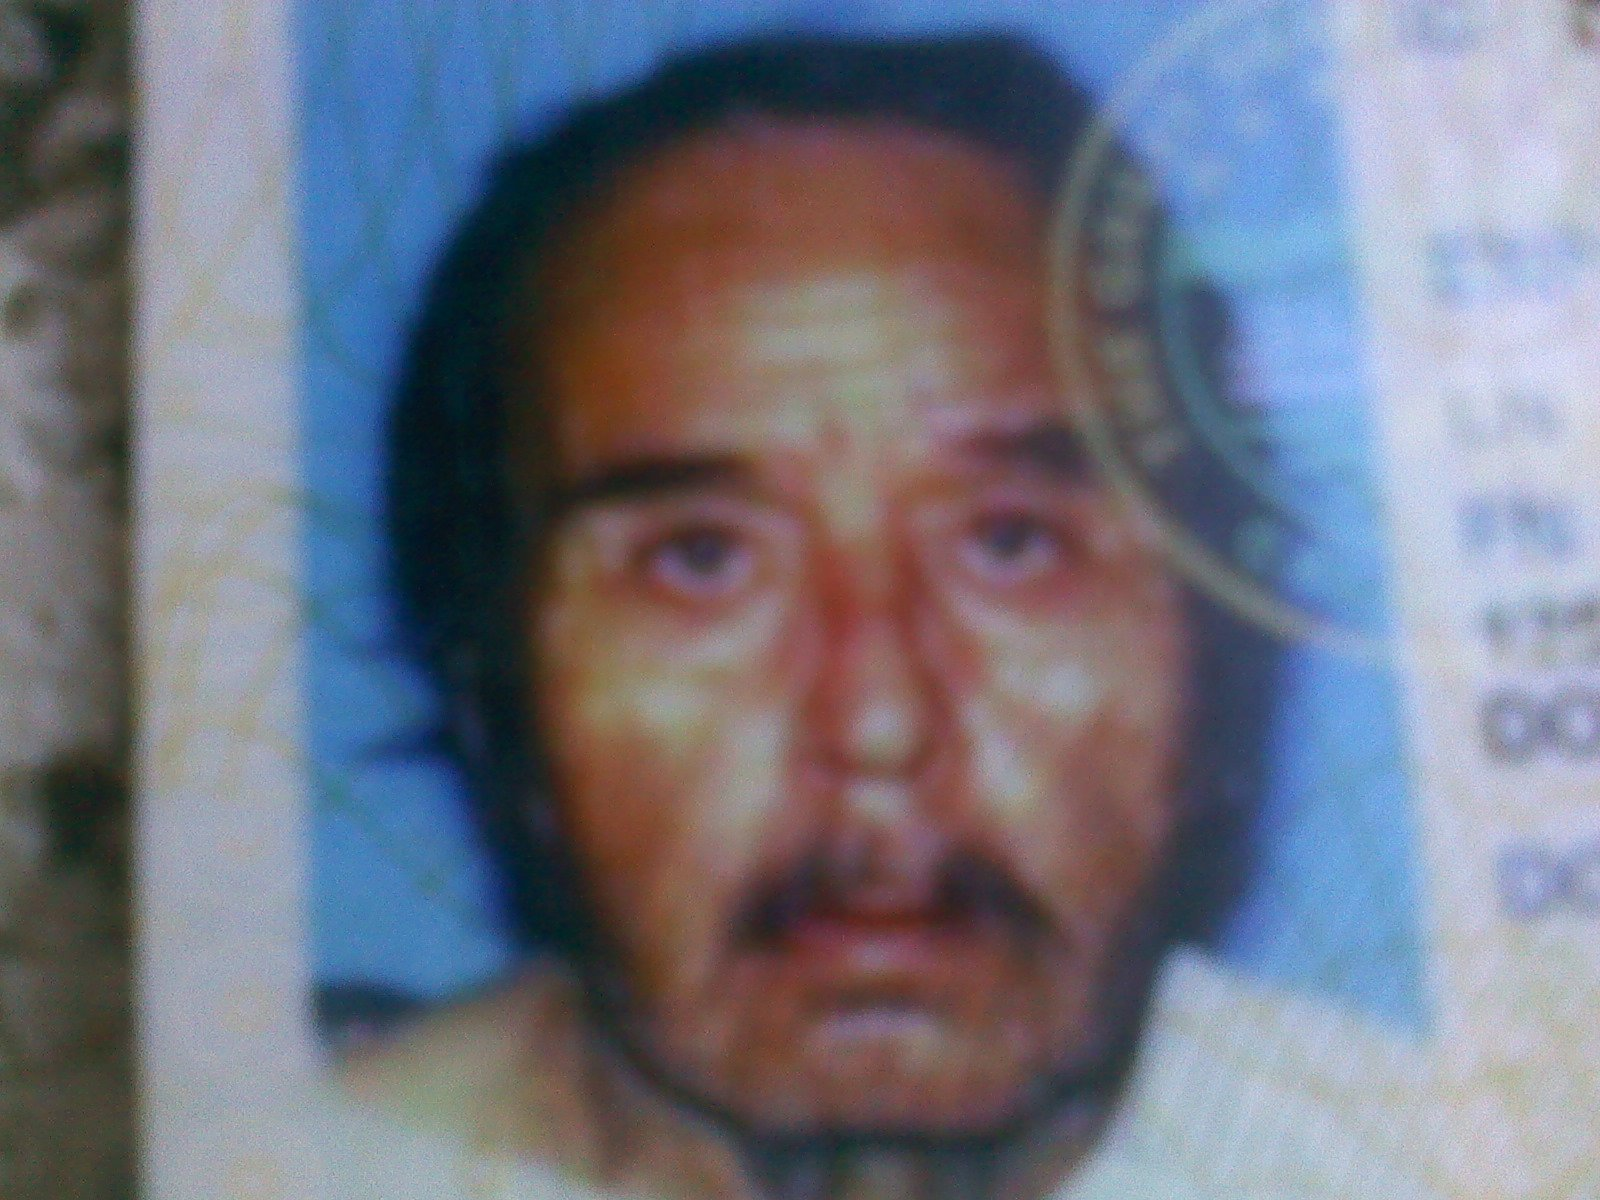 Louis Quijada Zepeda (Source: Pinal County Sheriff's Office)